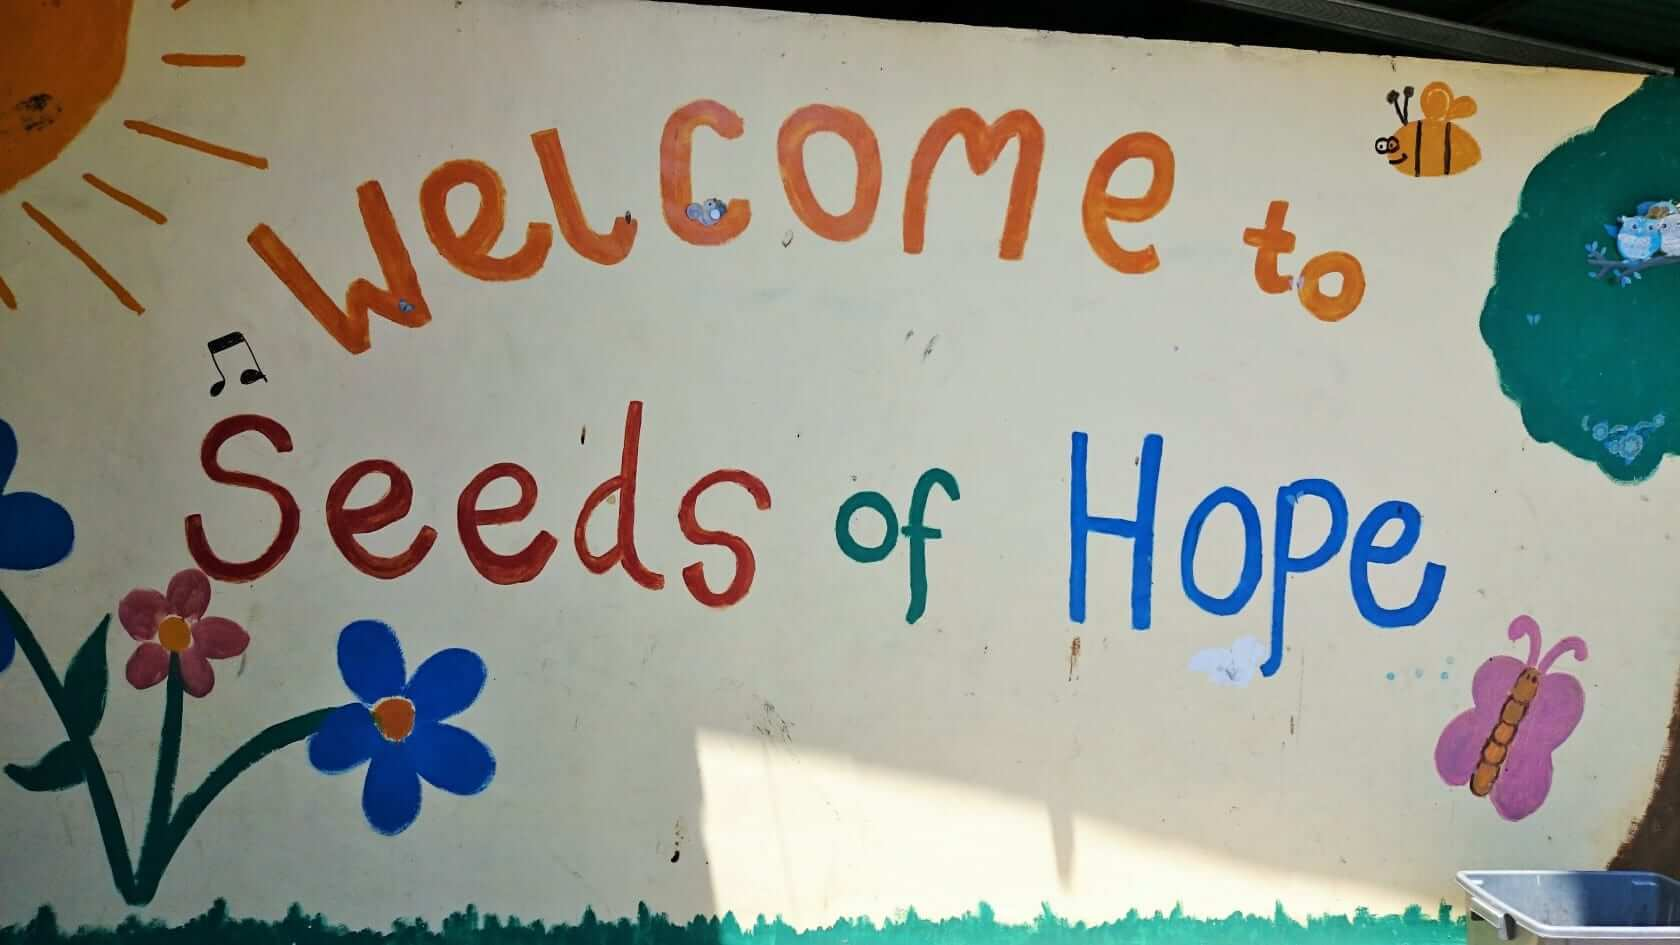 seeds of hope welcoming sign